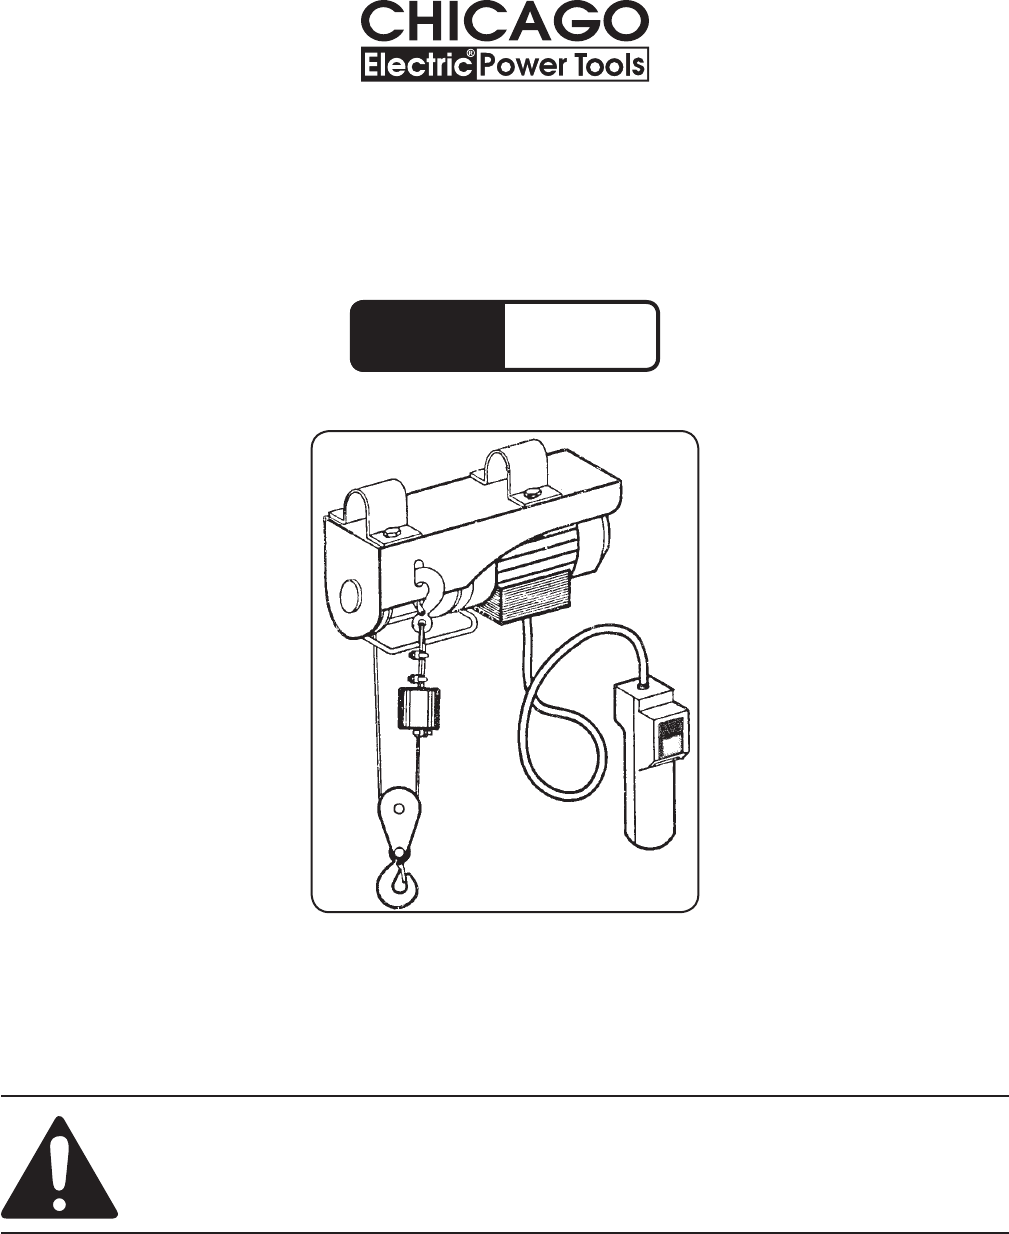 hight resolution of 440 lb electric hoist model 40765 set up and operating instructions